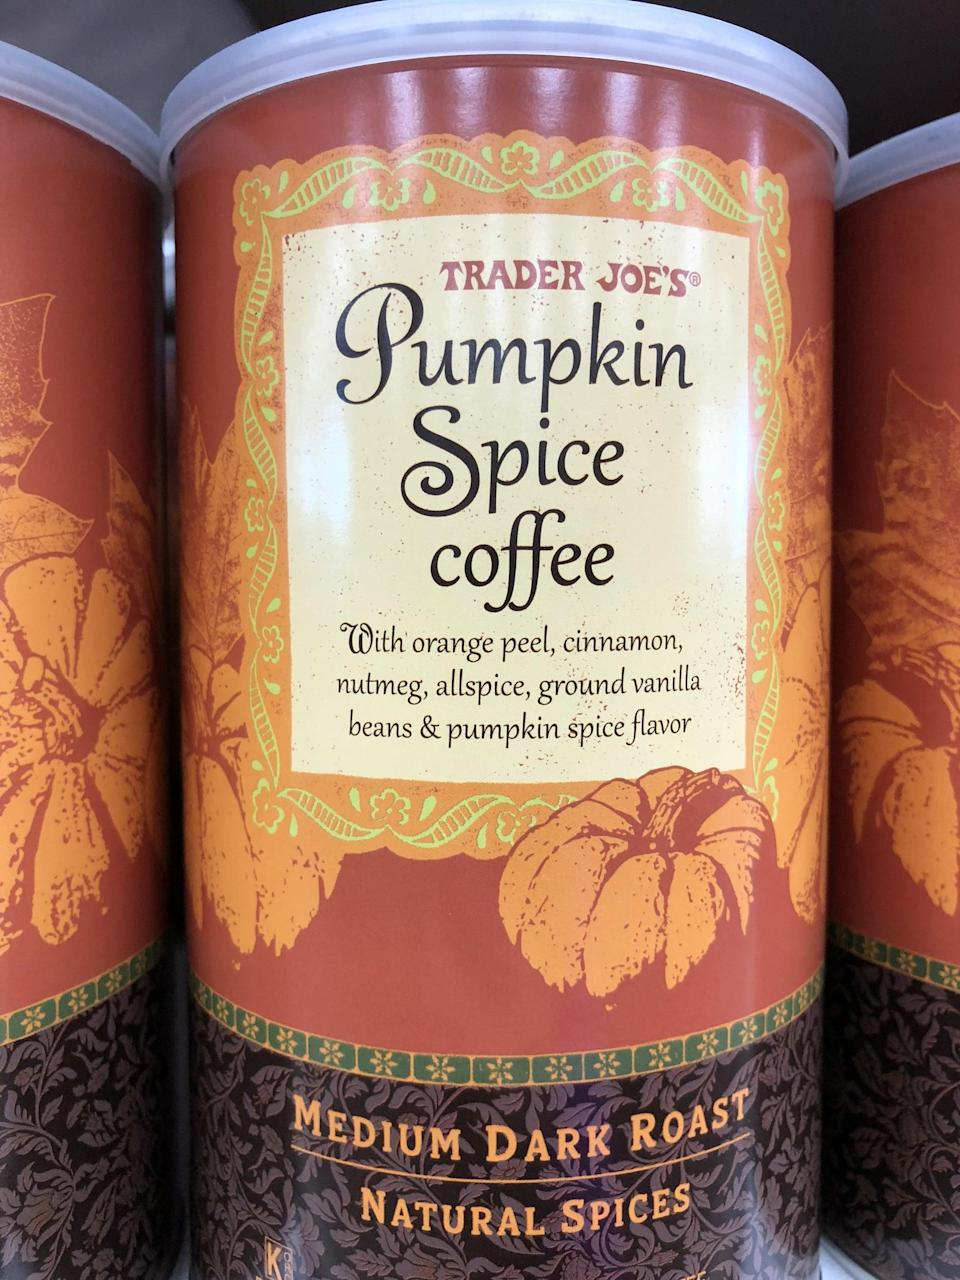 """<p>If you're into pumpkin spice lattes, make a <a href=""""https://www.popsugar.com/fitness/Pumpkin-Spice-Latte-Protein-Smoothie-44075740"""" class=""""link rapid-noclick-resp"""" rel=""""nofollow noopener"""" target=""""_blank"""" data-ylk=""""slk:pumpkin spice latte protein smoothie"""">pumpkin spice latte protein smoothie</a> using this delicious cinnamony spiced coffee.</p>"""